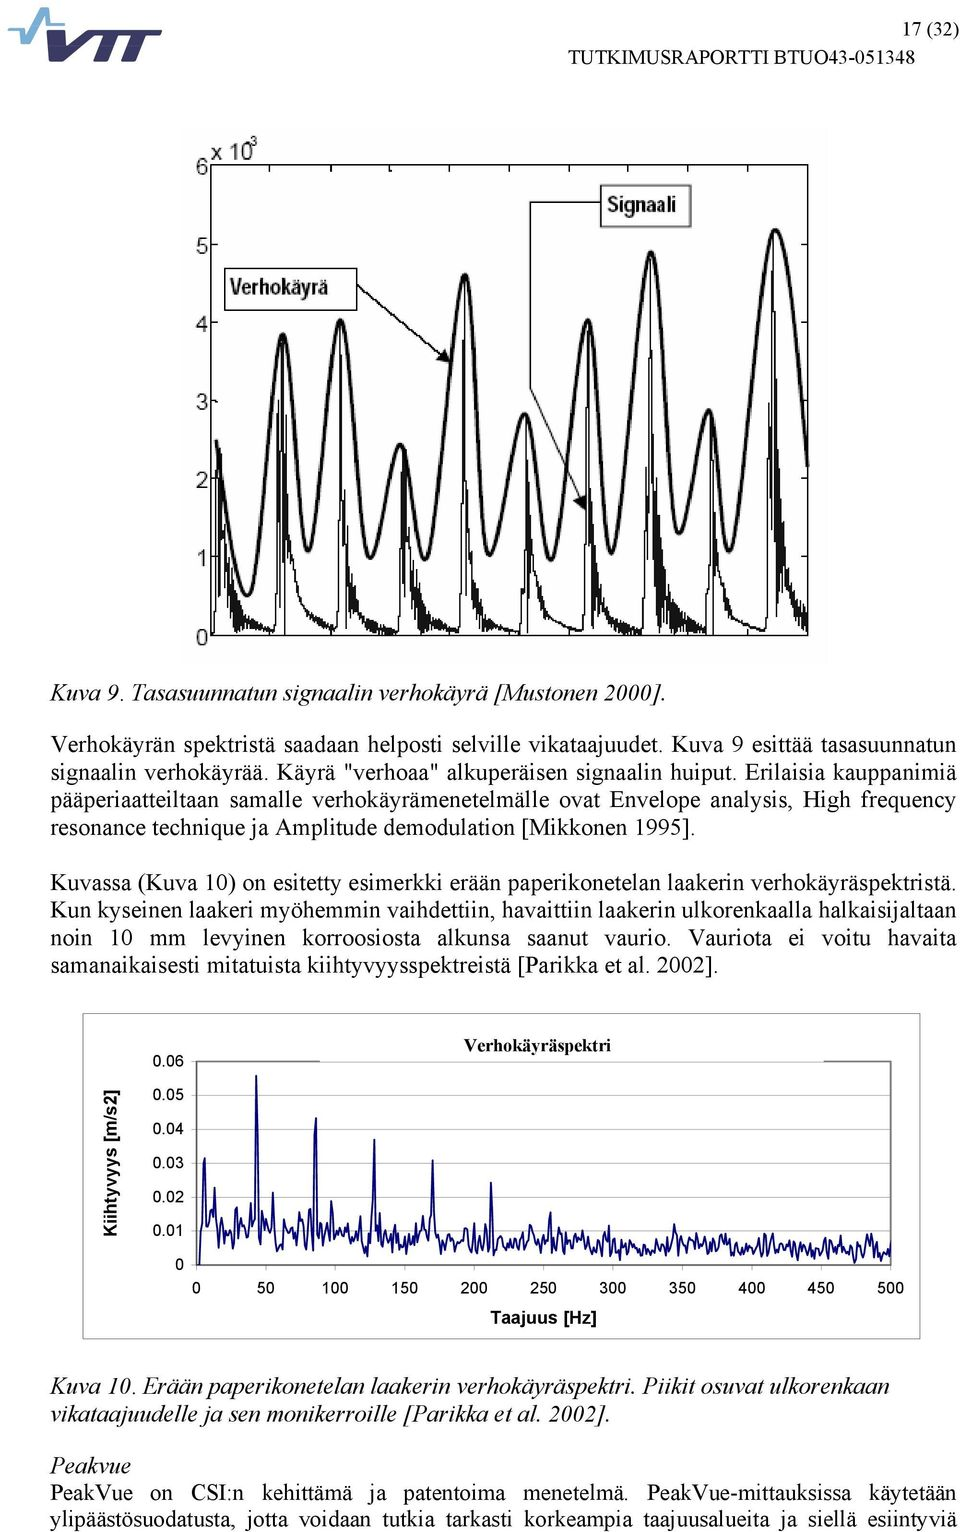 Erilaisia kauppanimiä pääperiaatteiltaan samalle verhokäyrämenetelmälle ovat Envelope analysis, High frequency resonance technique ja Amplitude demodulation [Mikkonen 1995].